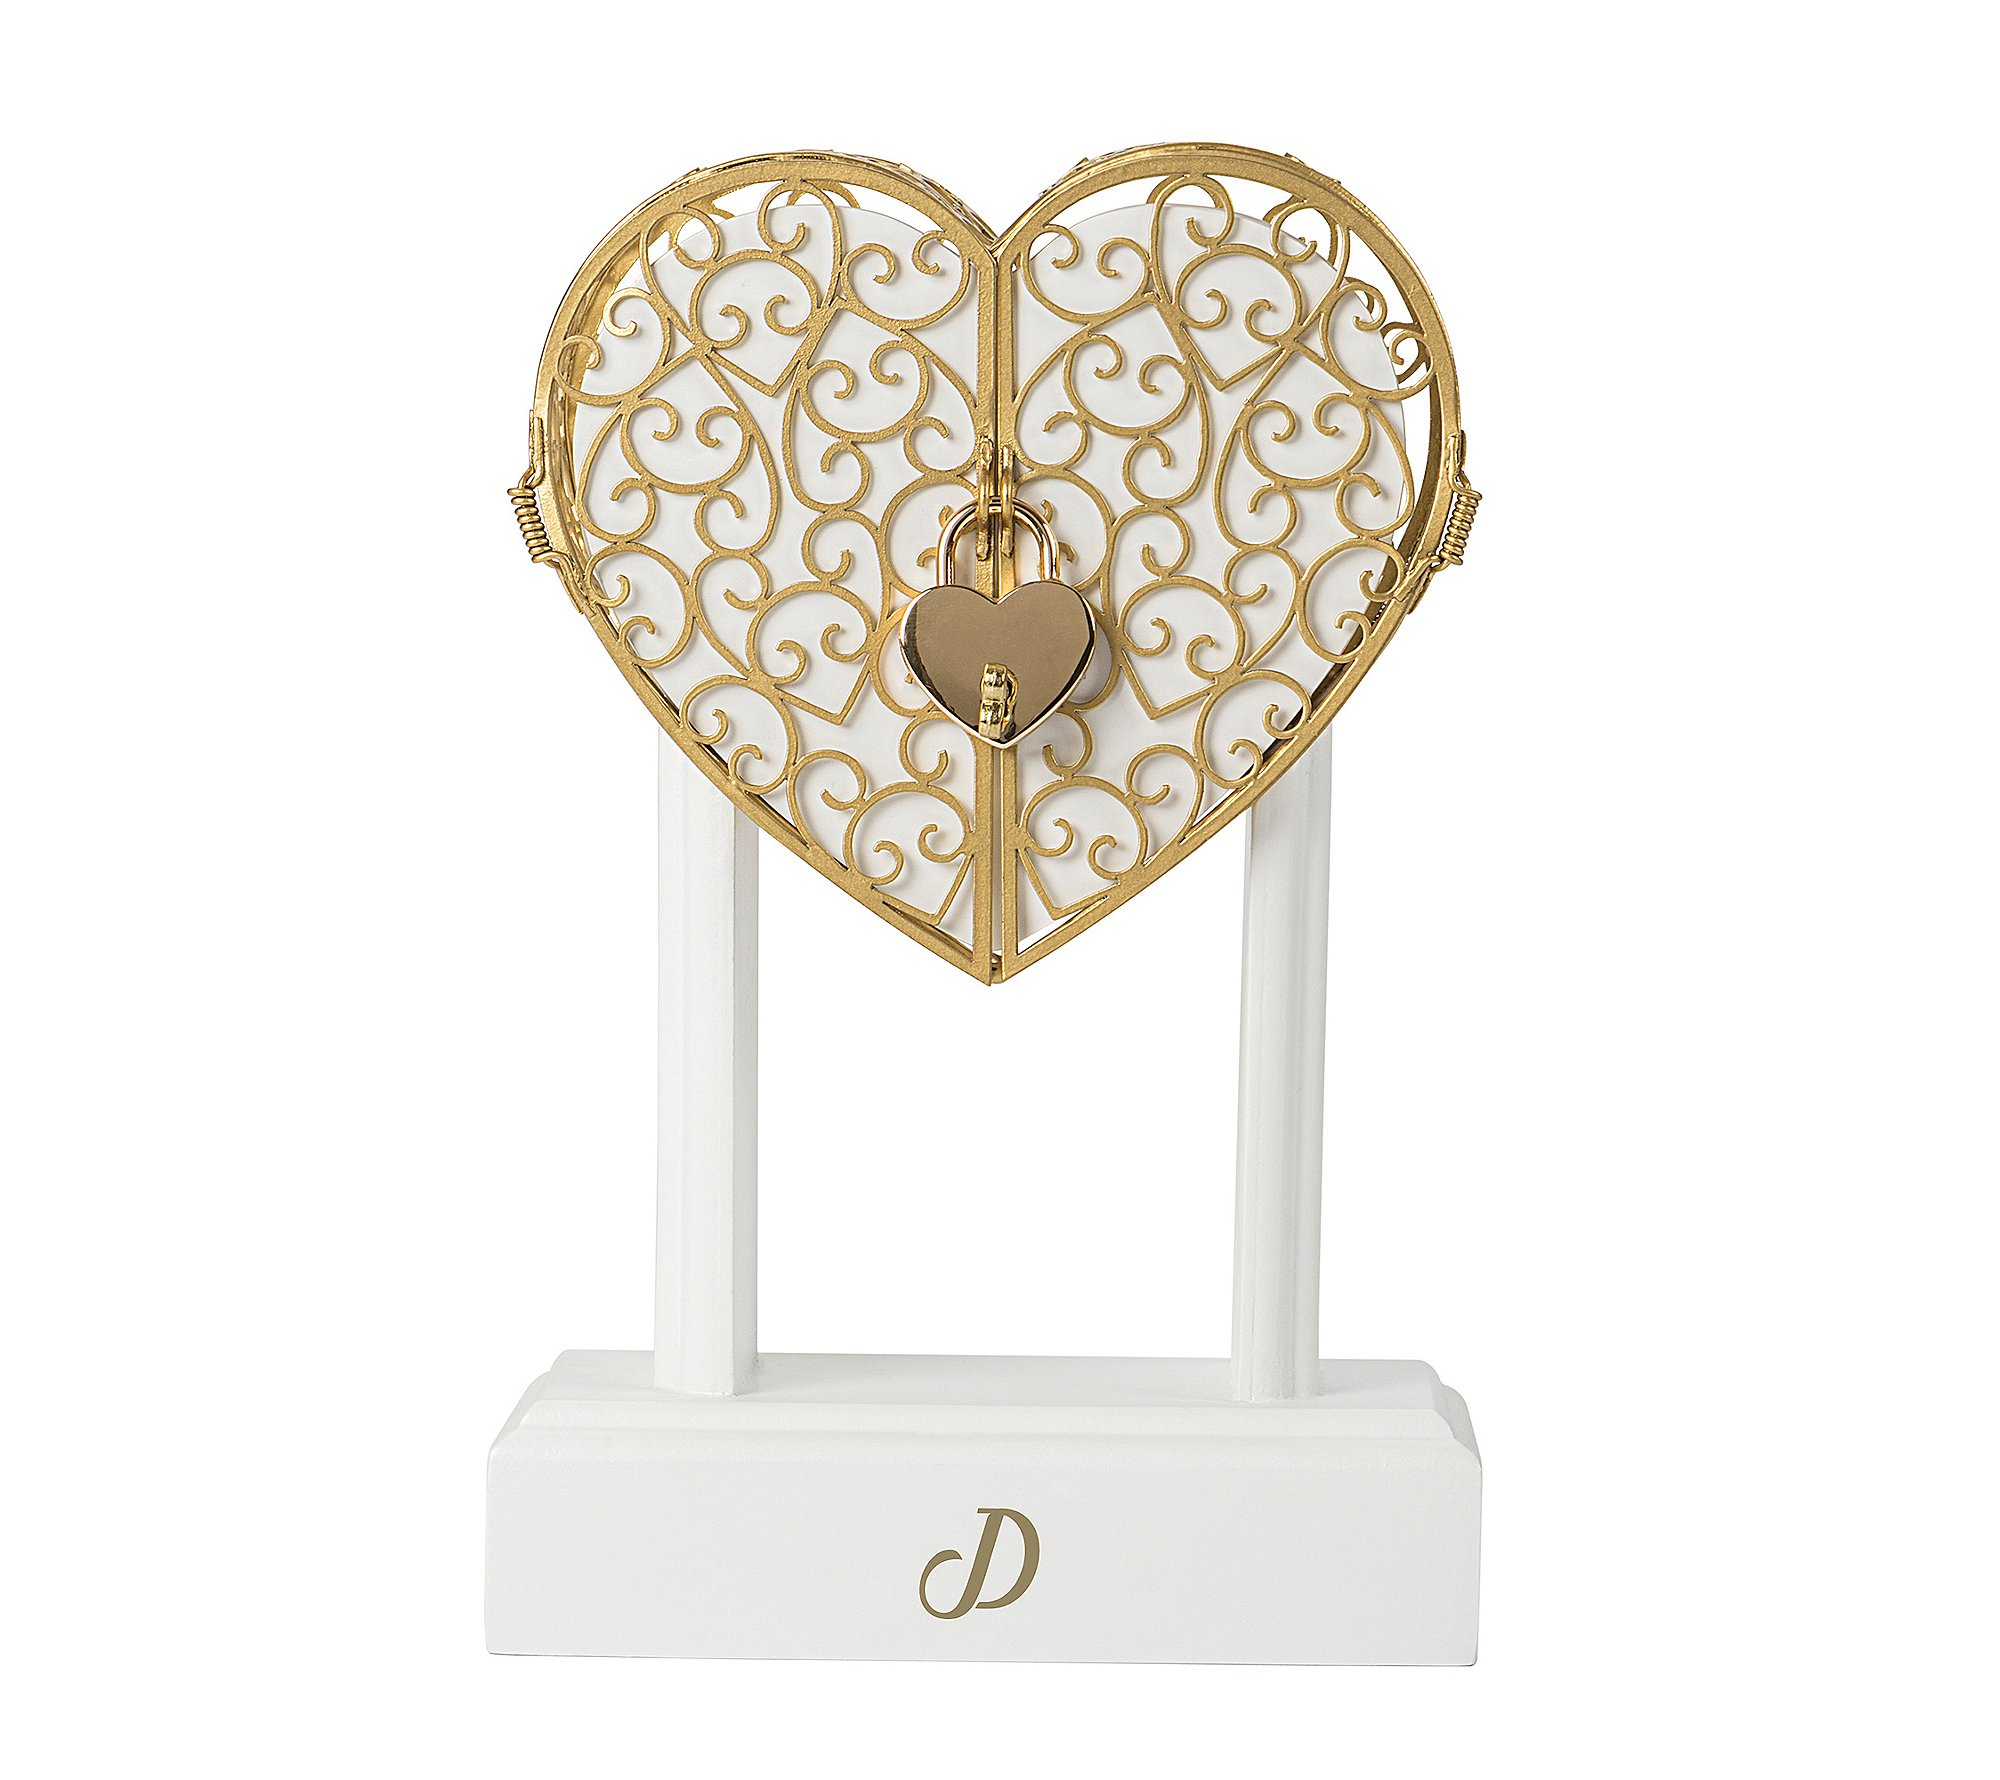 Cathy's Concepts Personalized Heart Vow Unity Keepsake Wedding, White/Gold